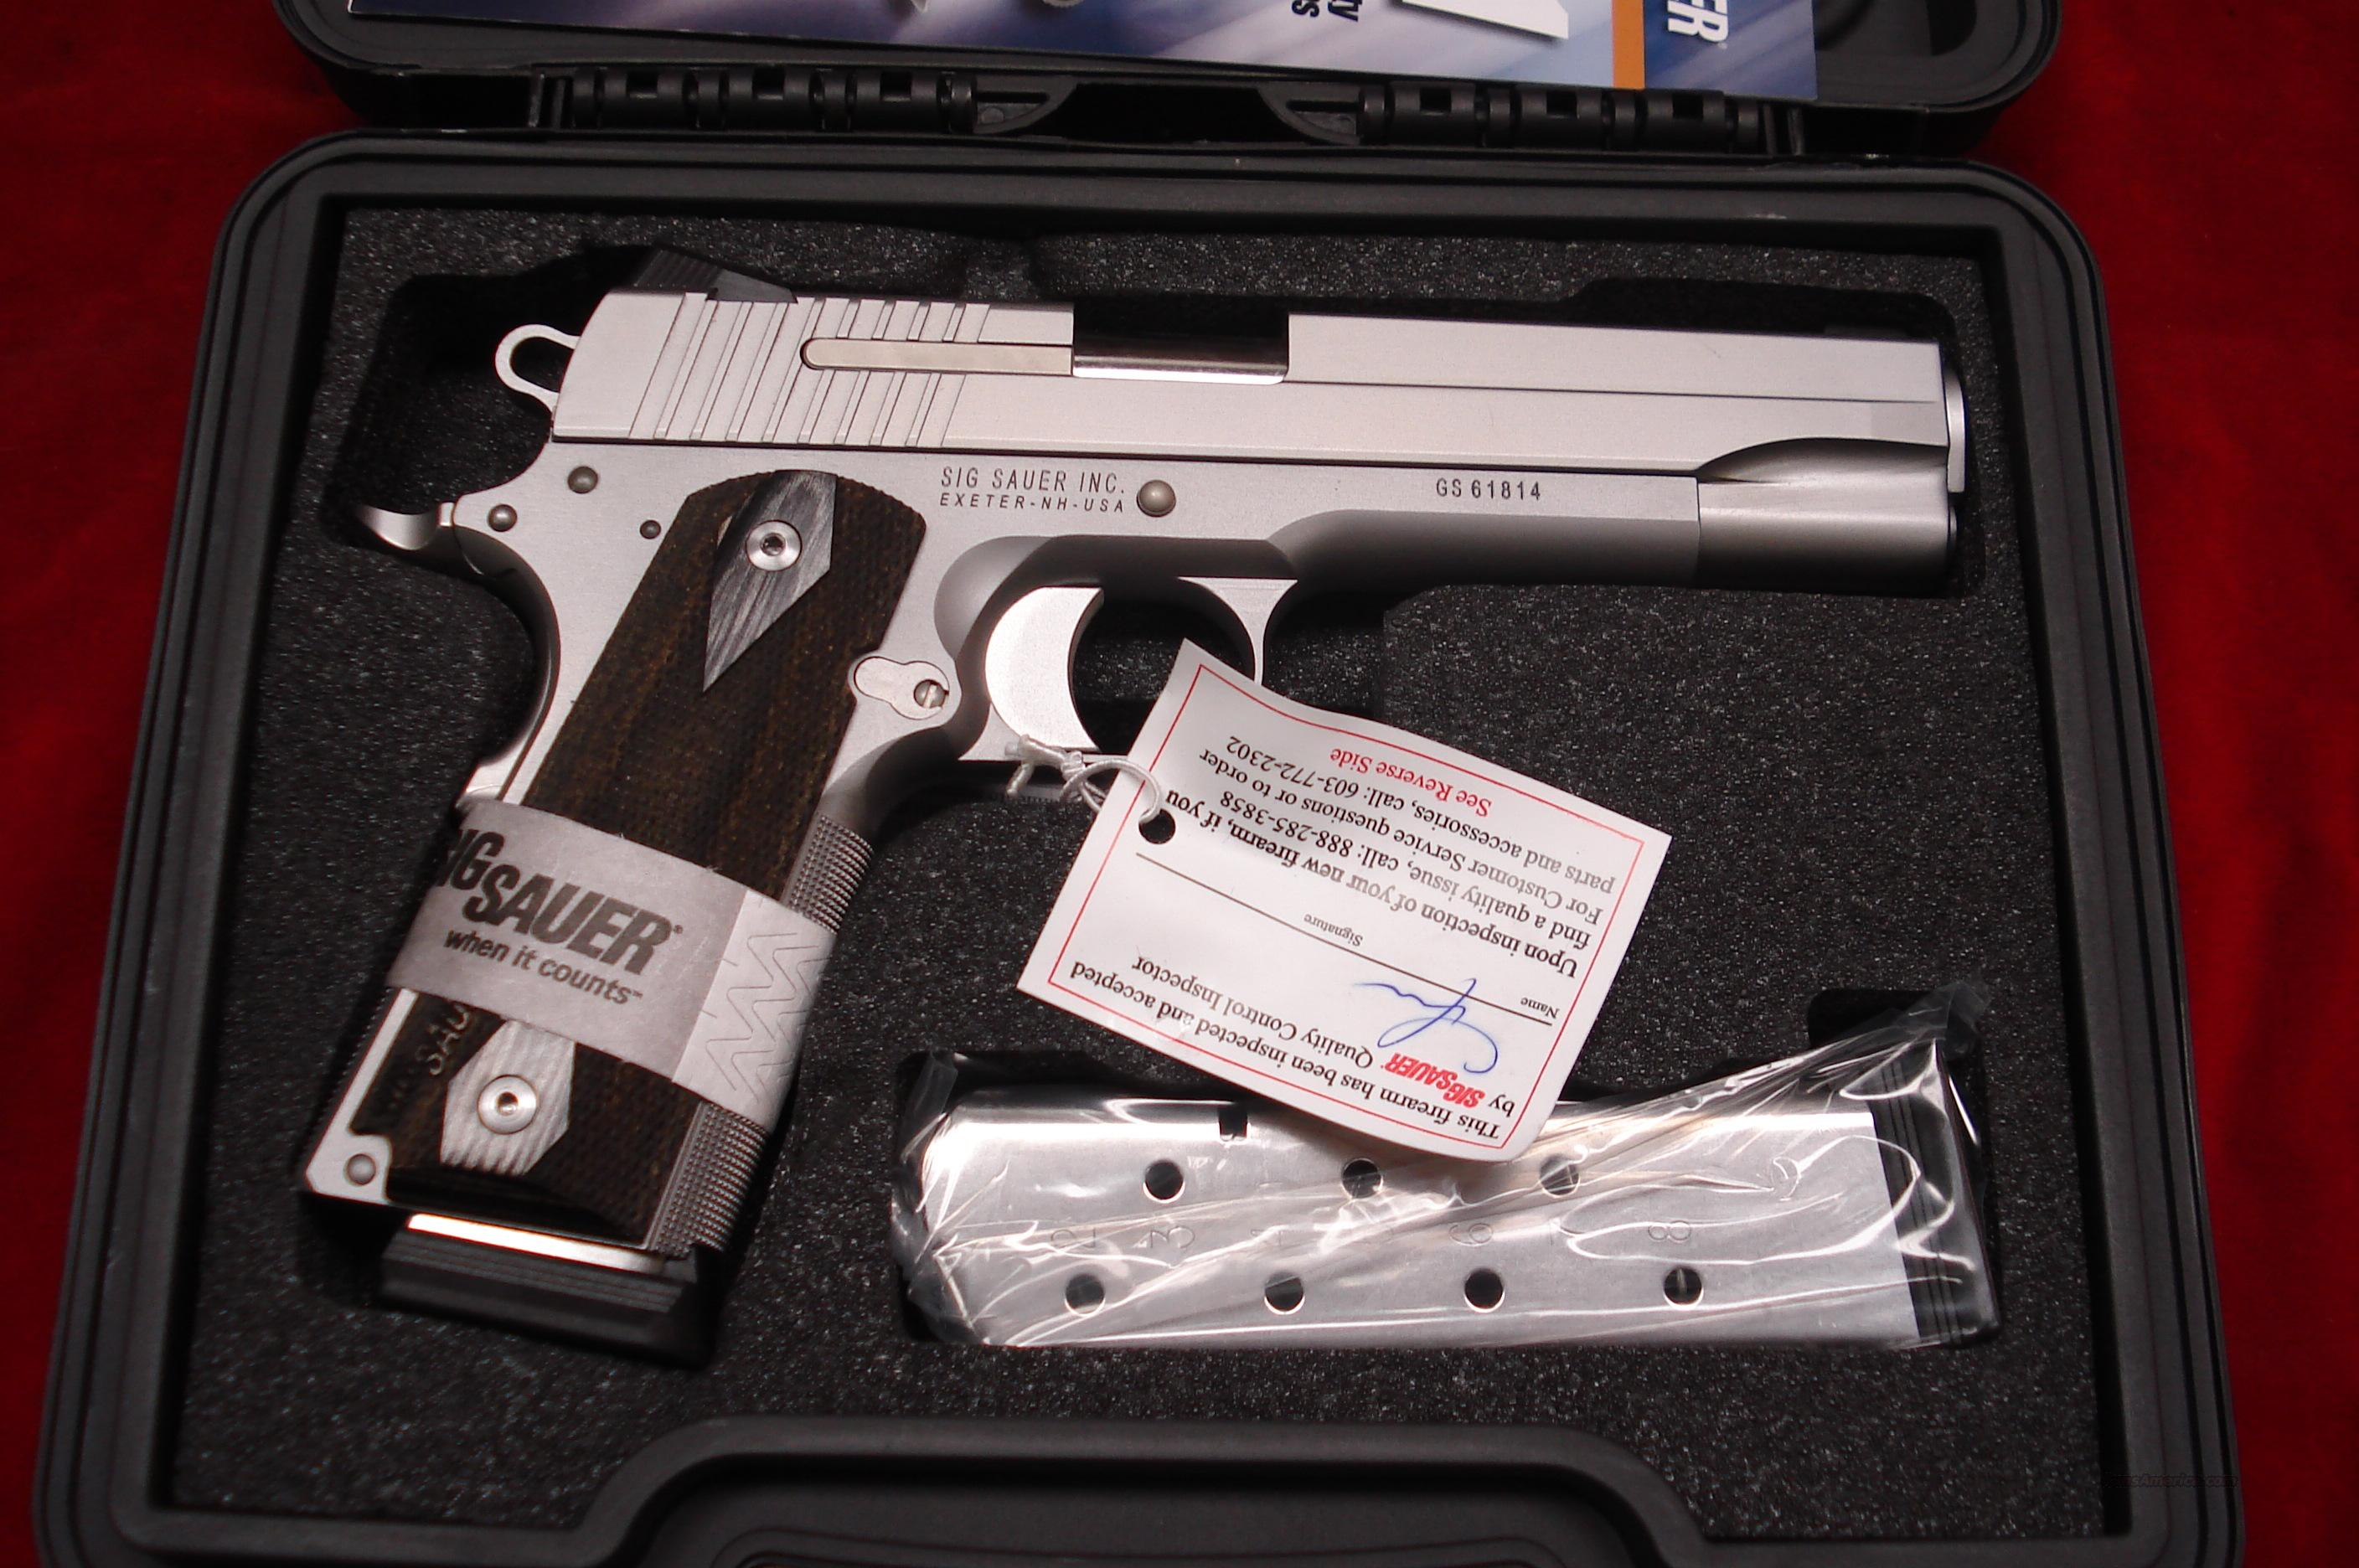 SIG SAUER STAINLESS 1911 WITH NIGHT SIGHTS NEW   Guns > Pistols > Sig - Sauer/Sigarms Pistols > 1911